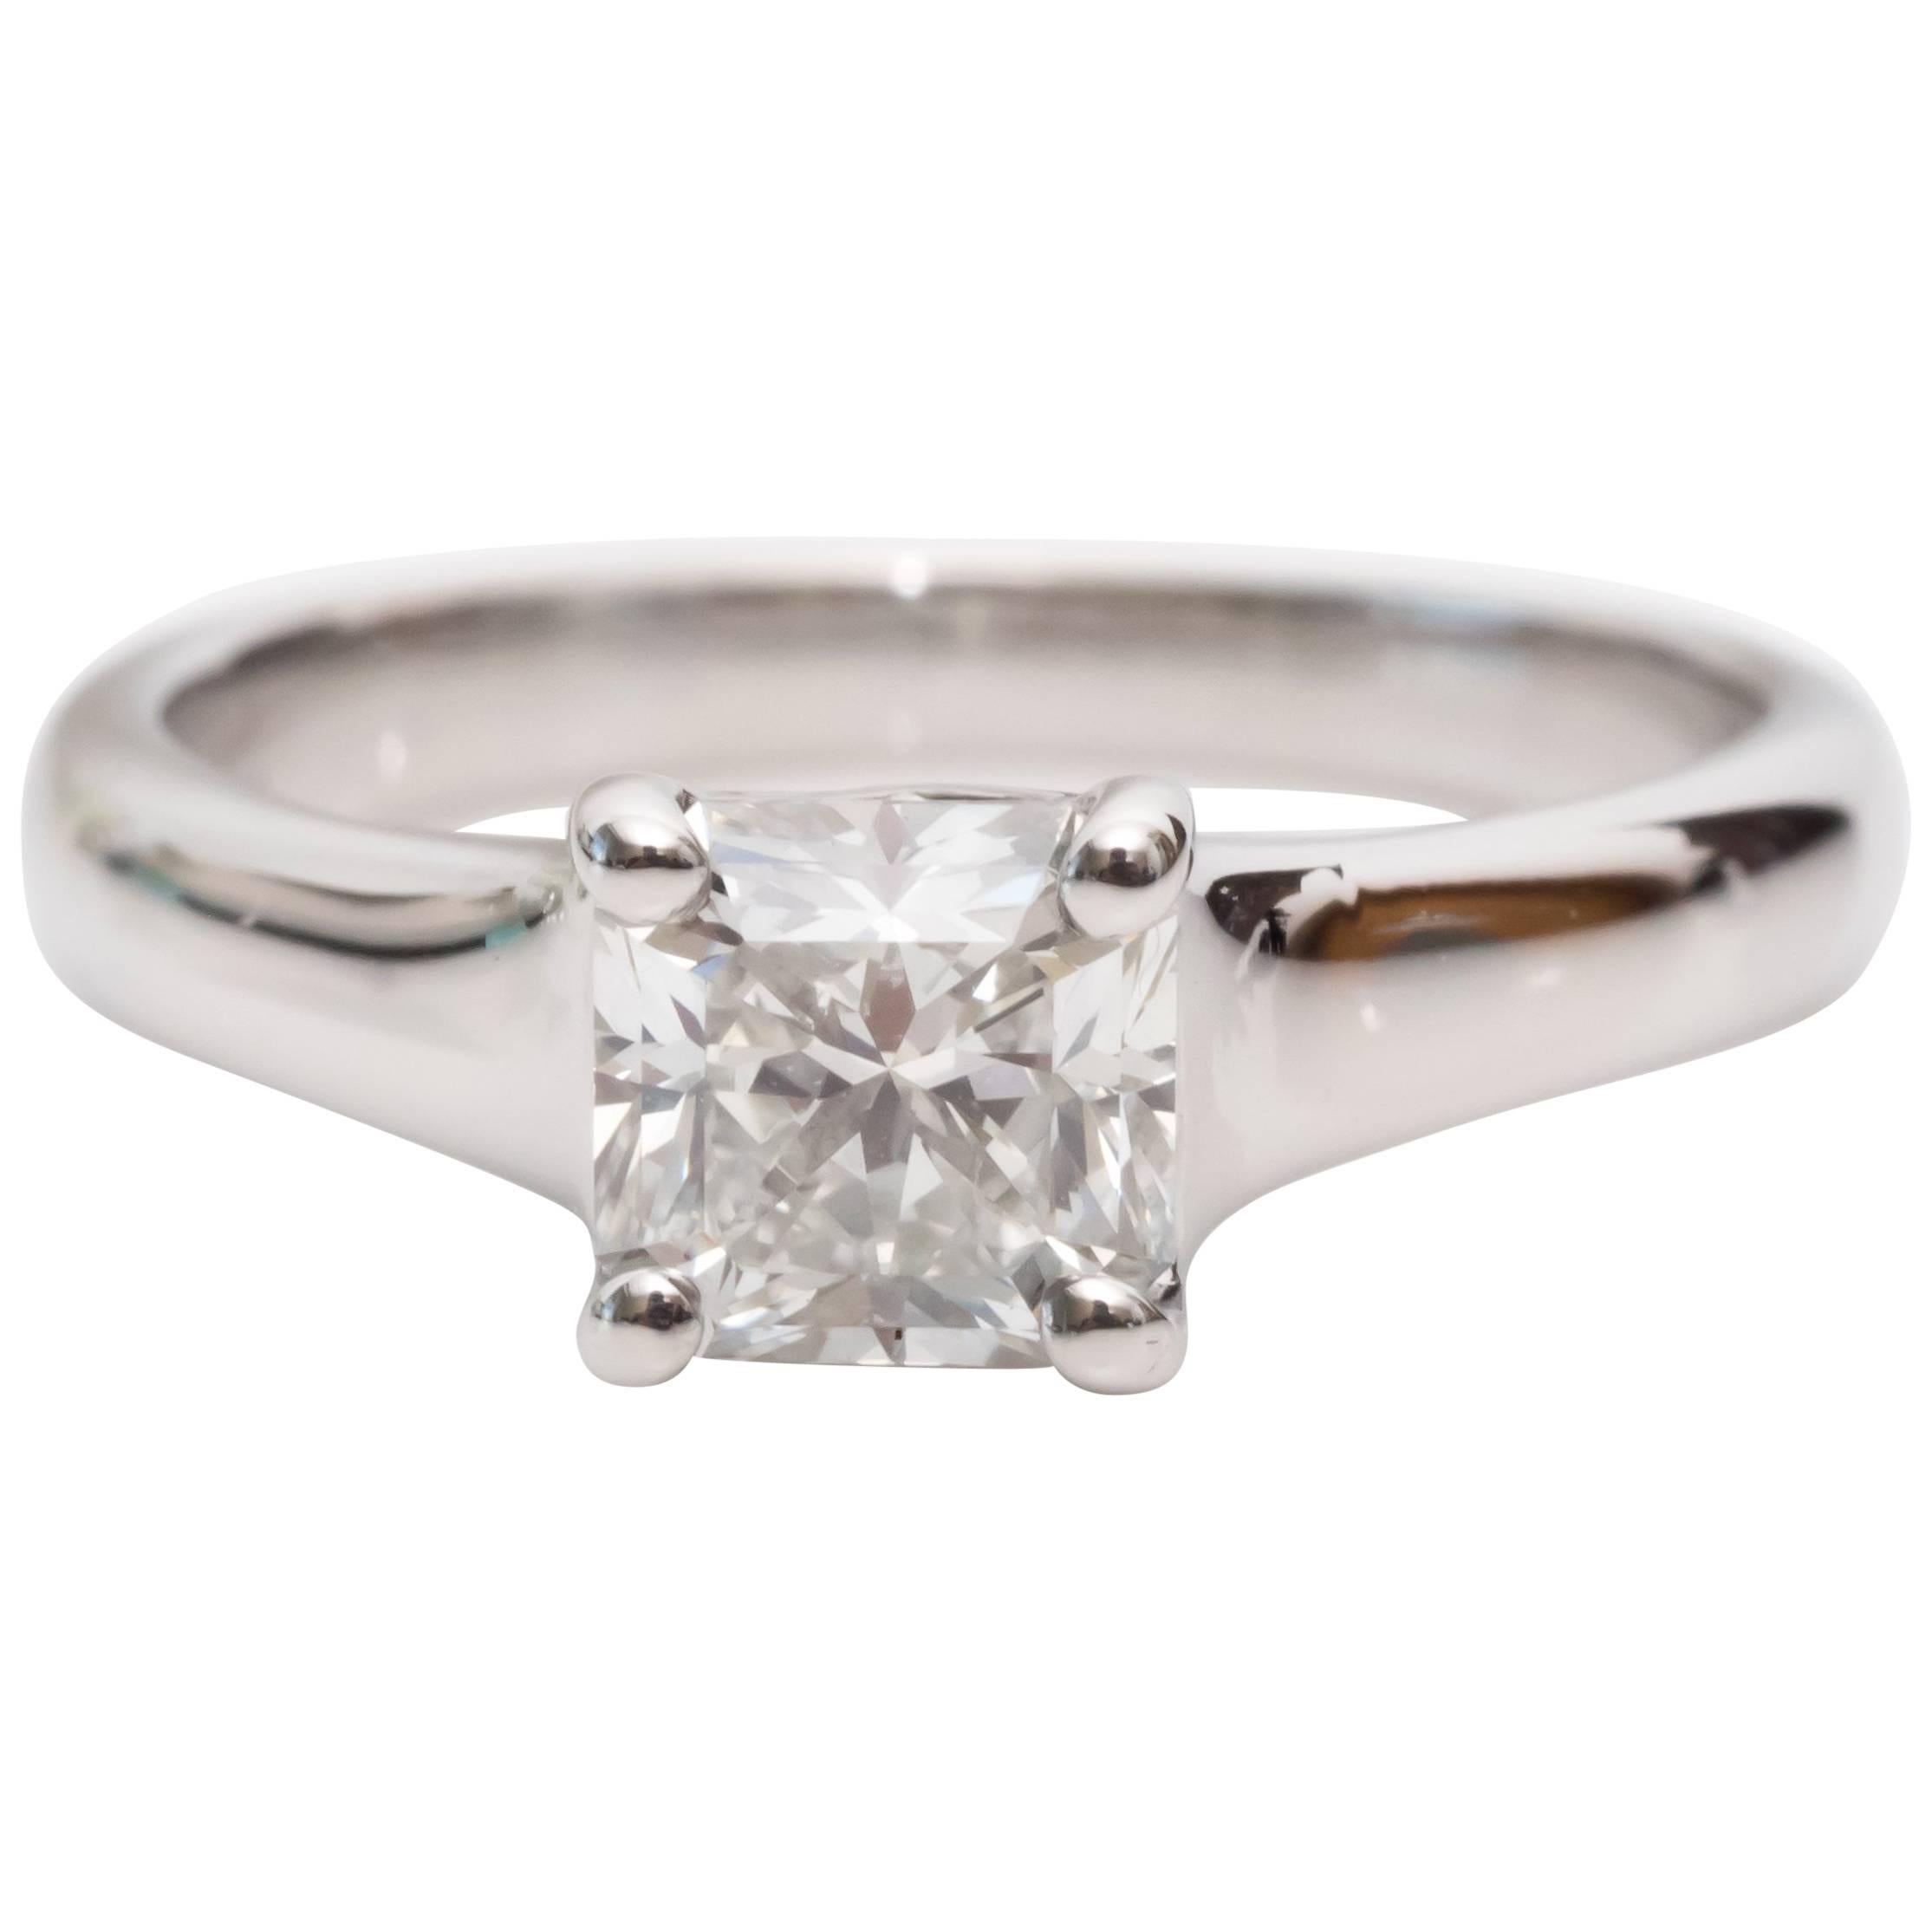 Tiffany and Co Lucida Diamond Engagement Ring For Sale at 1stdibs